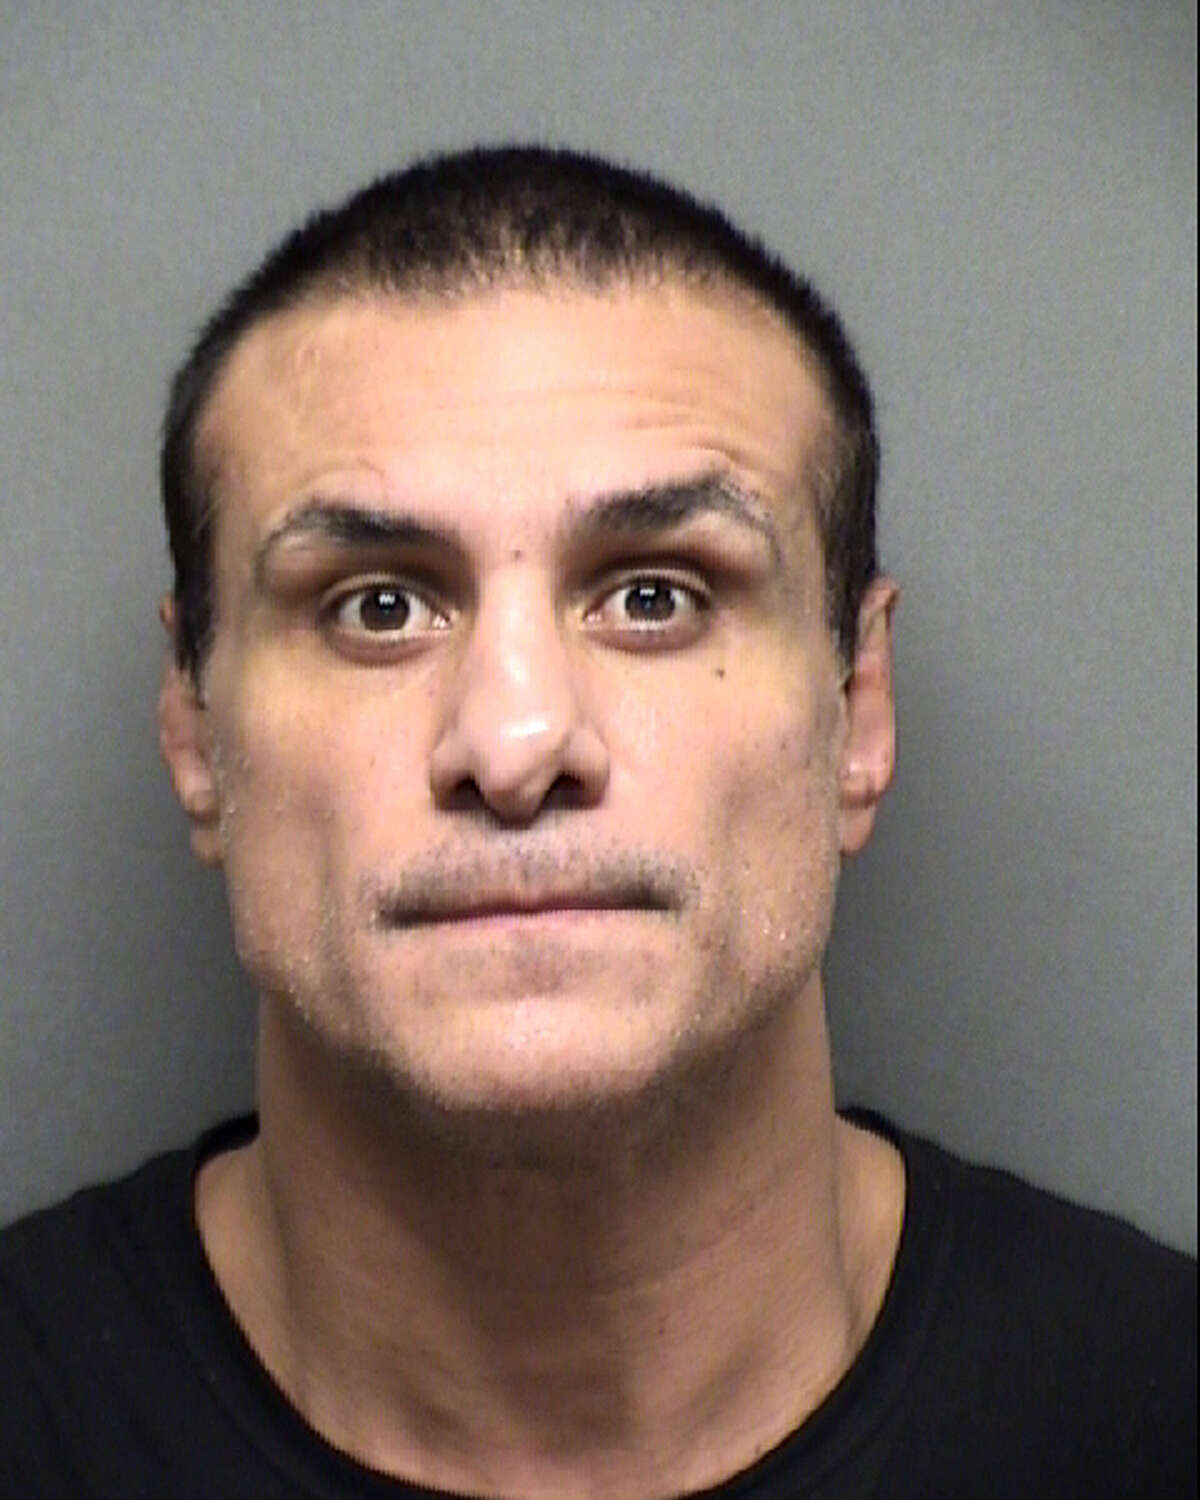 Jose A. Rodriguez Chucuan, 42, allegedly beat and sexually assaulted a woman on May 3, according to an arrest affidavit.